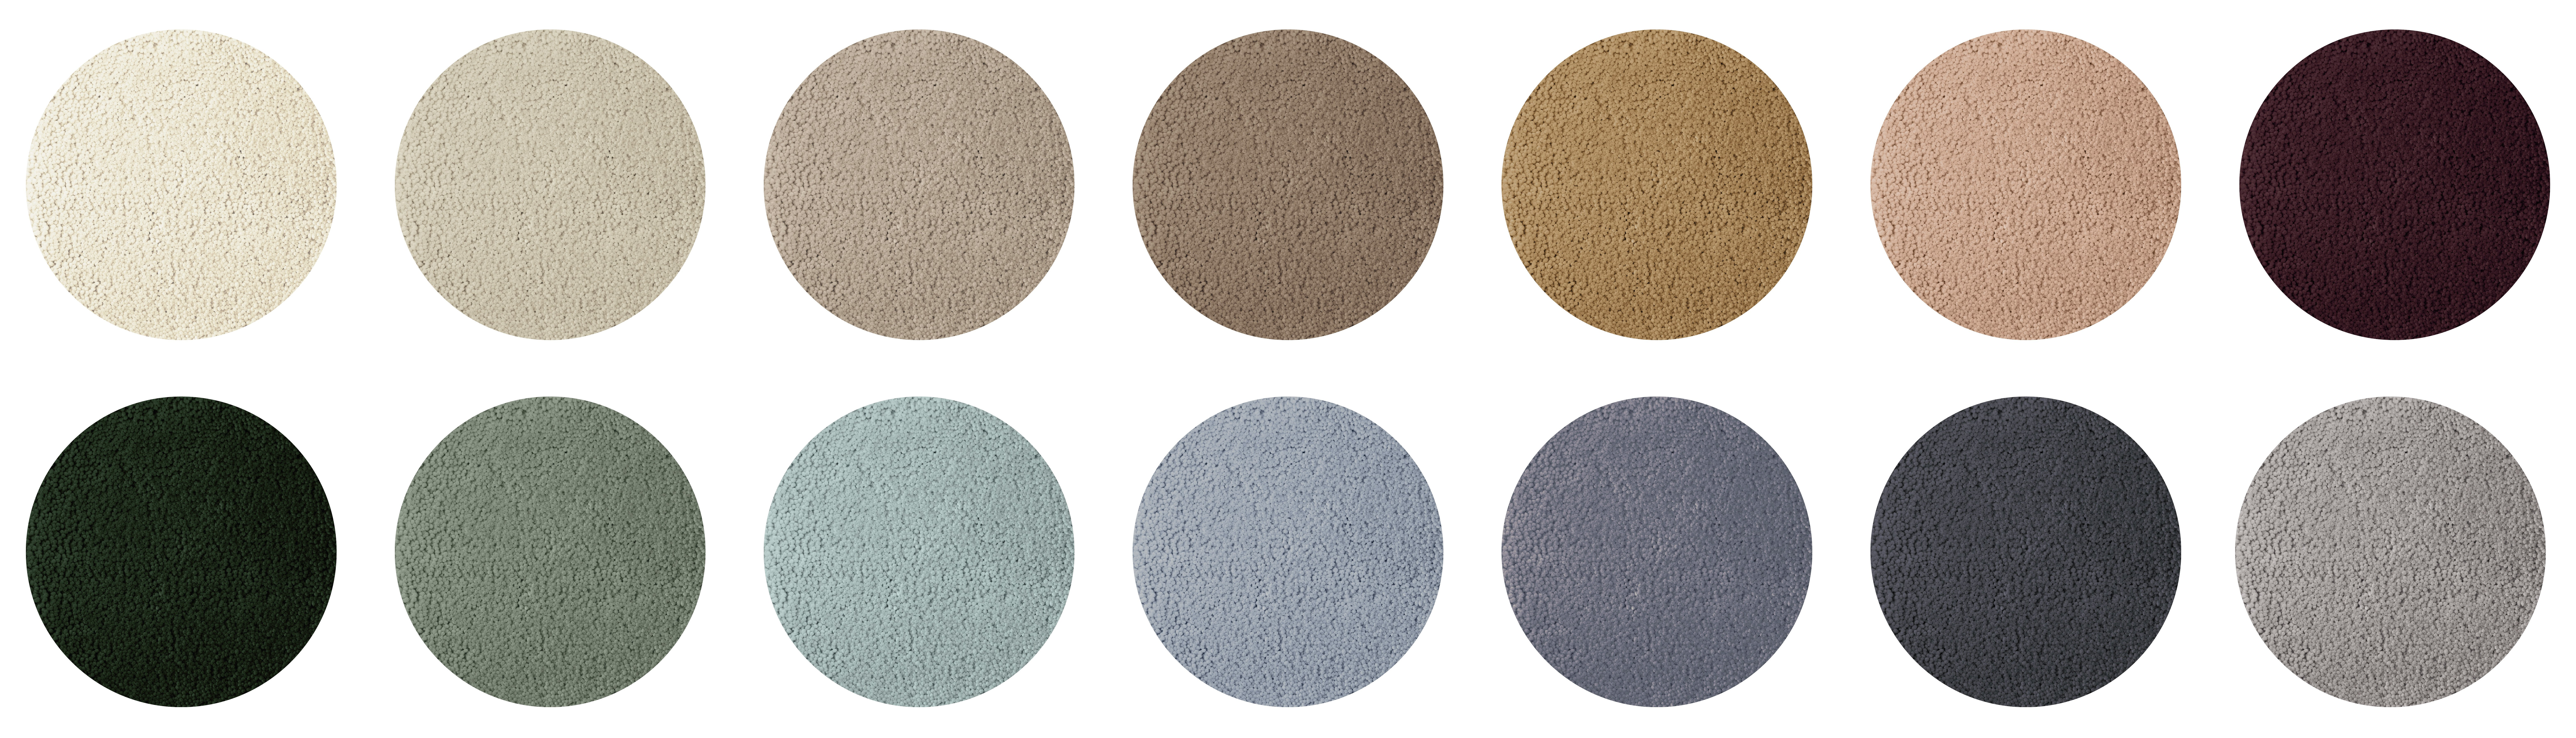 From L to R: Cream, Natural, Linen, Birch, Syrup, Blush, Mulberry, Forest, Sage, Mist, Cloud, Steel, Slate, Ash